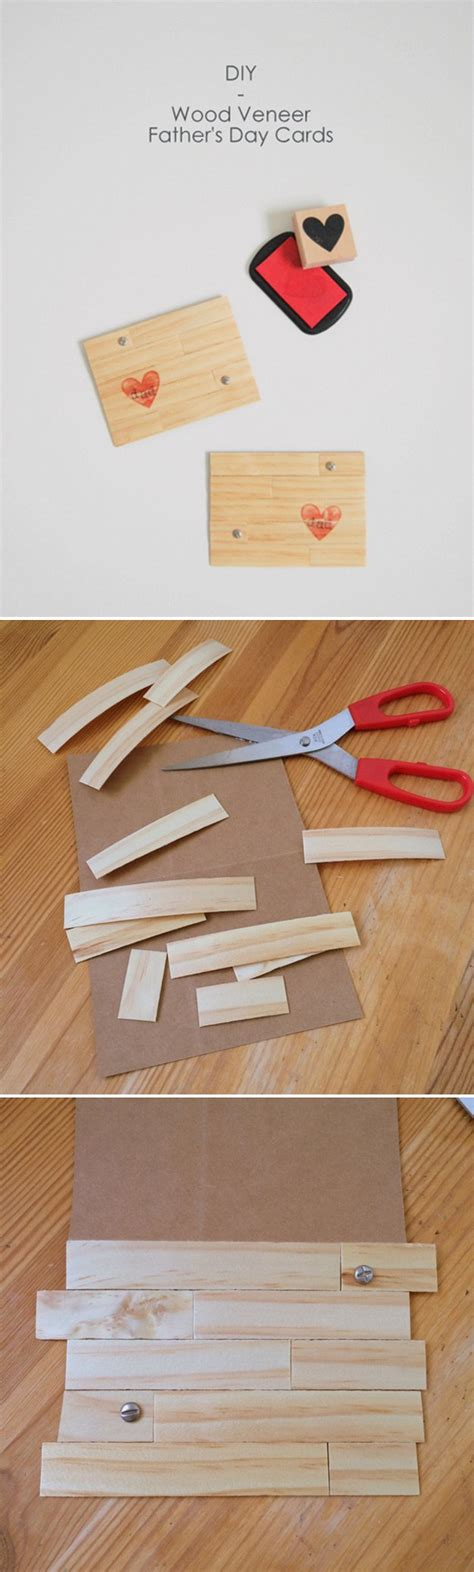 21 diy ideas for father s day cards fathers day cards 21 diy ideas for father s day cards diy projects craft